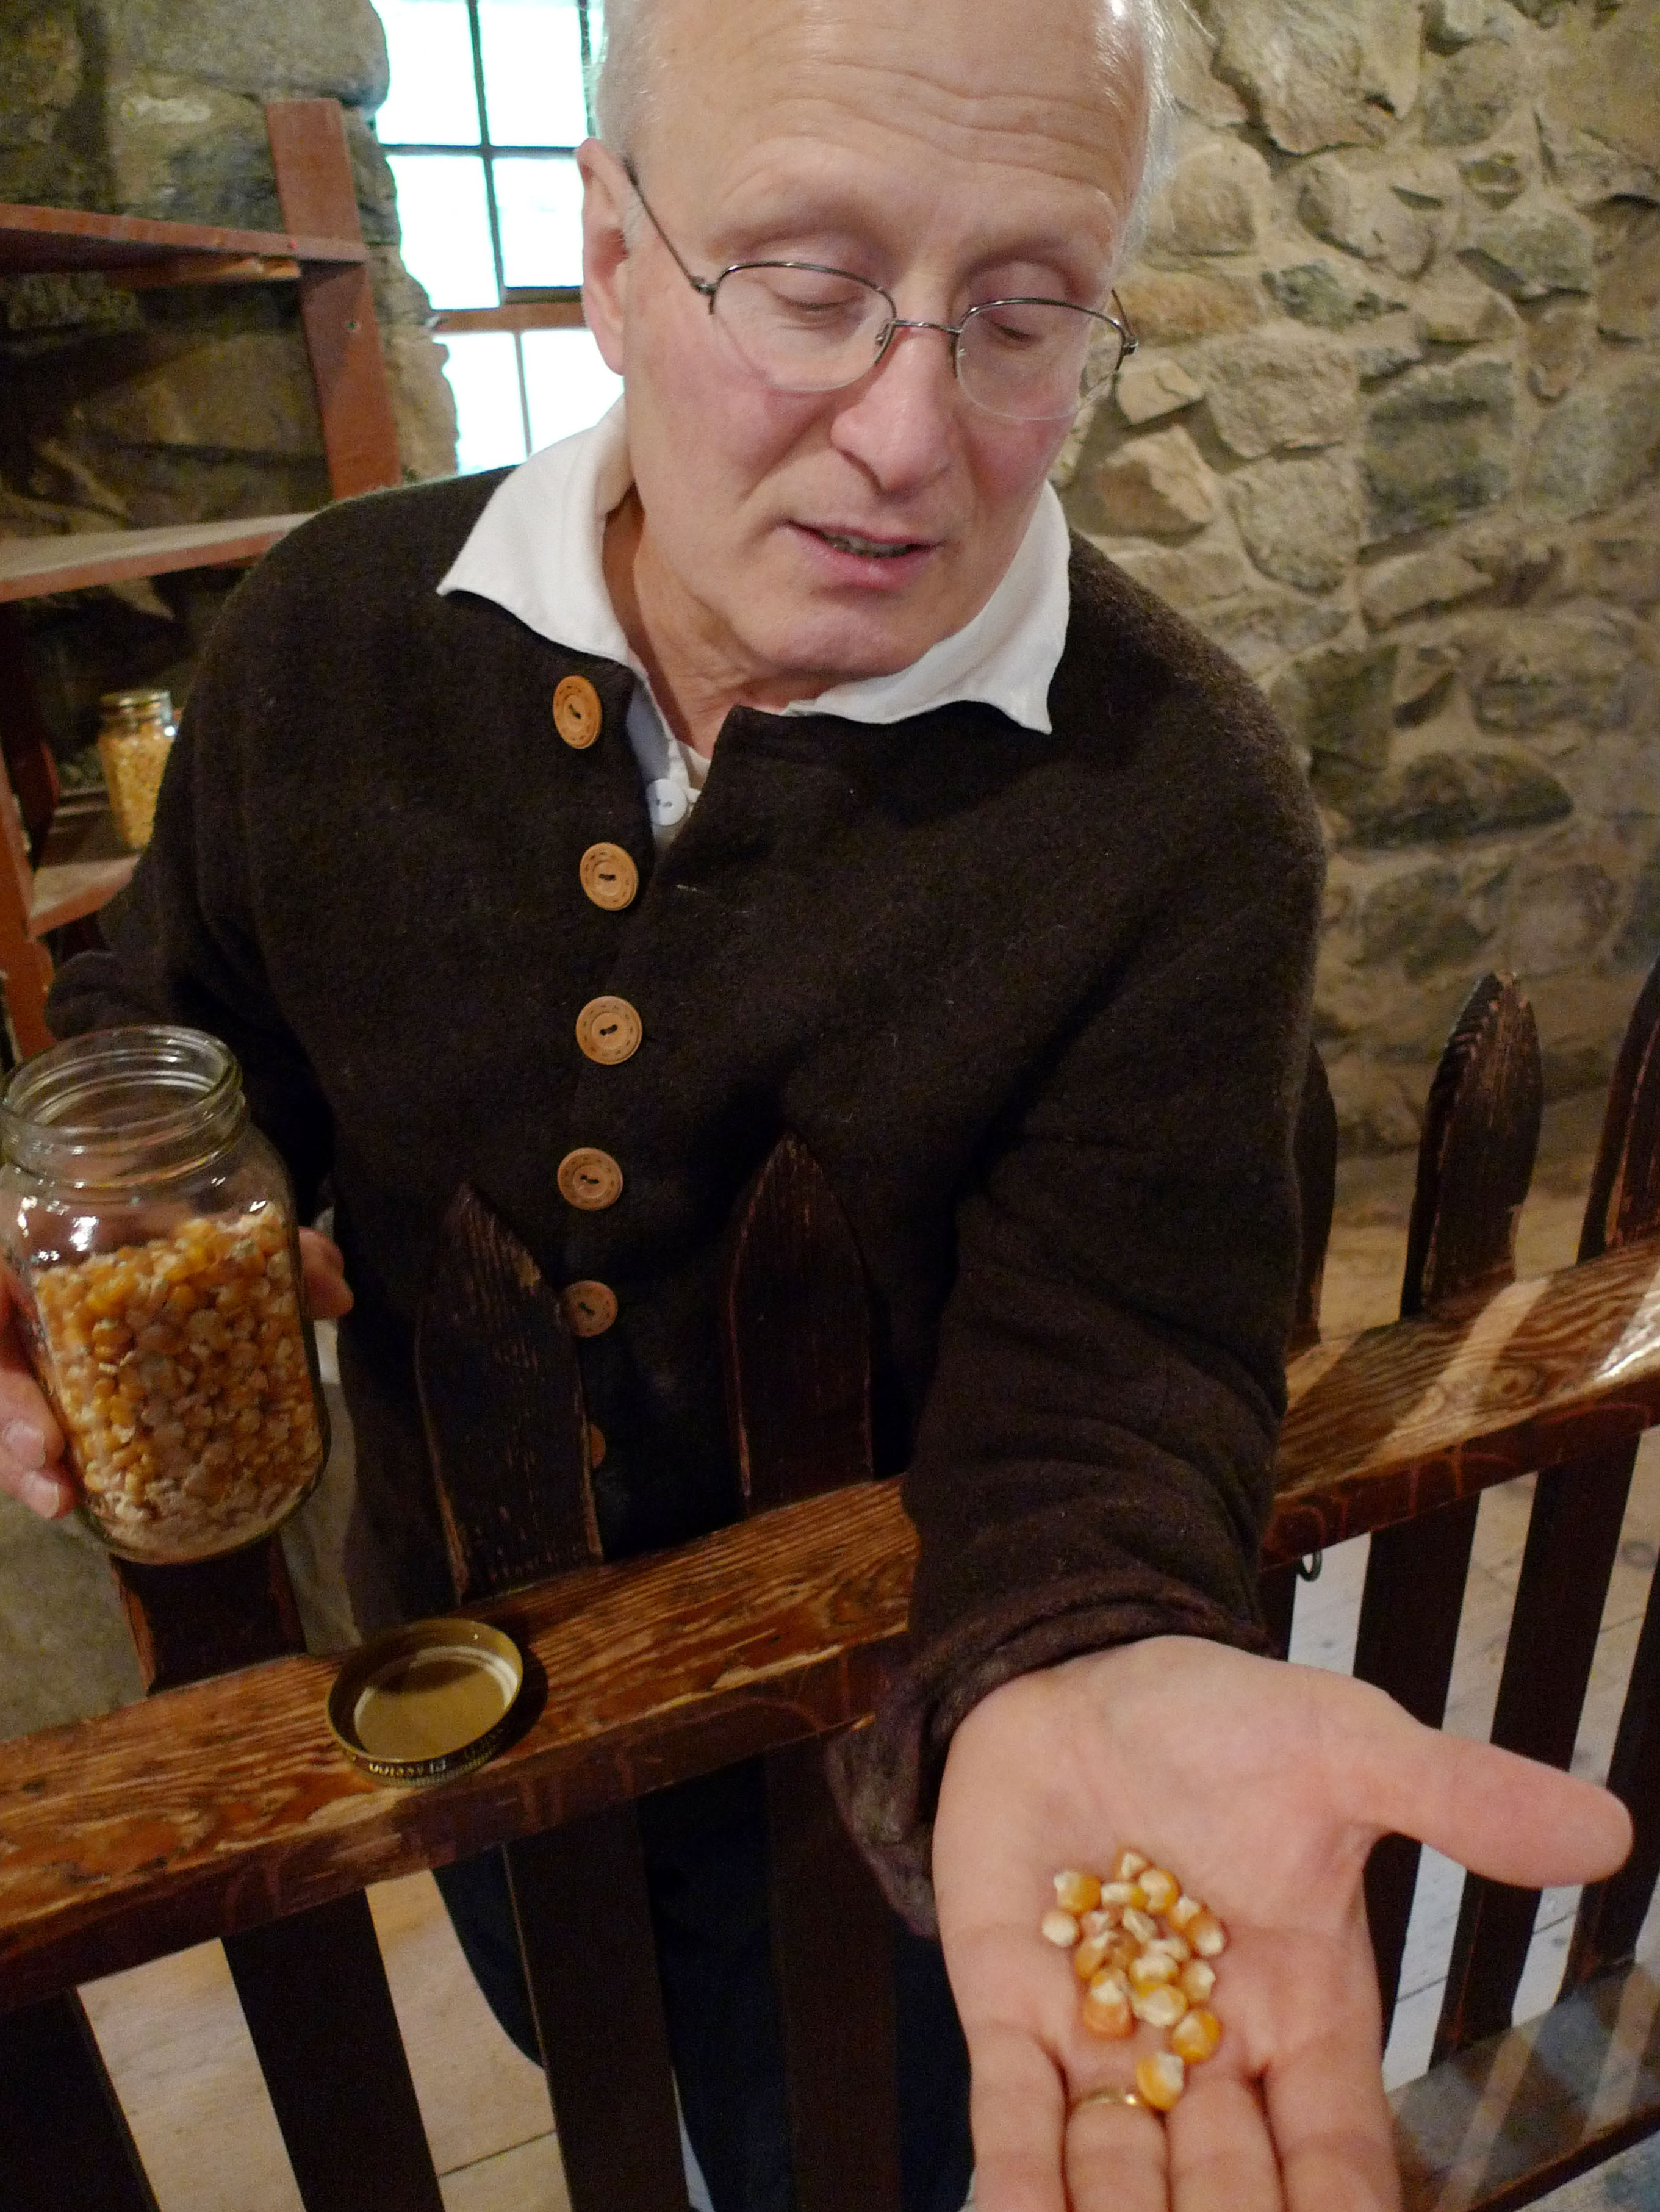 Miller Richard Gnatowski makes the cornmeal that the Wayside Inn uses in its Indian pudding.